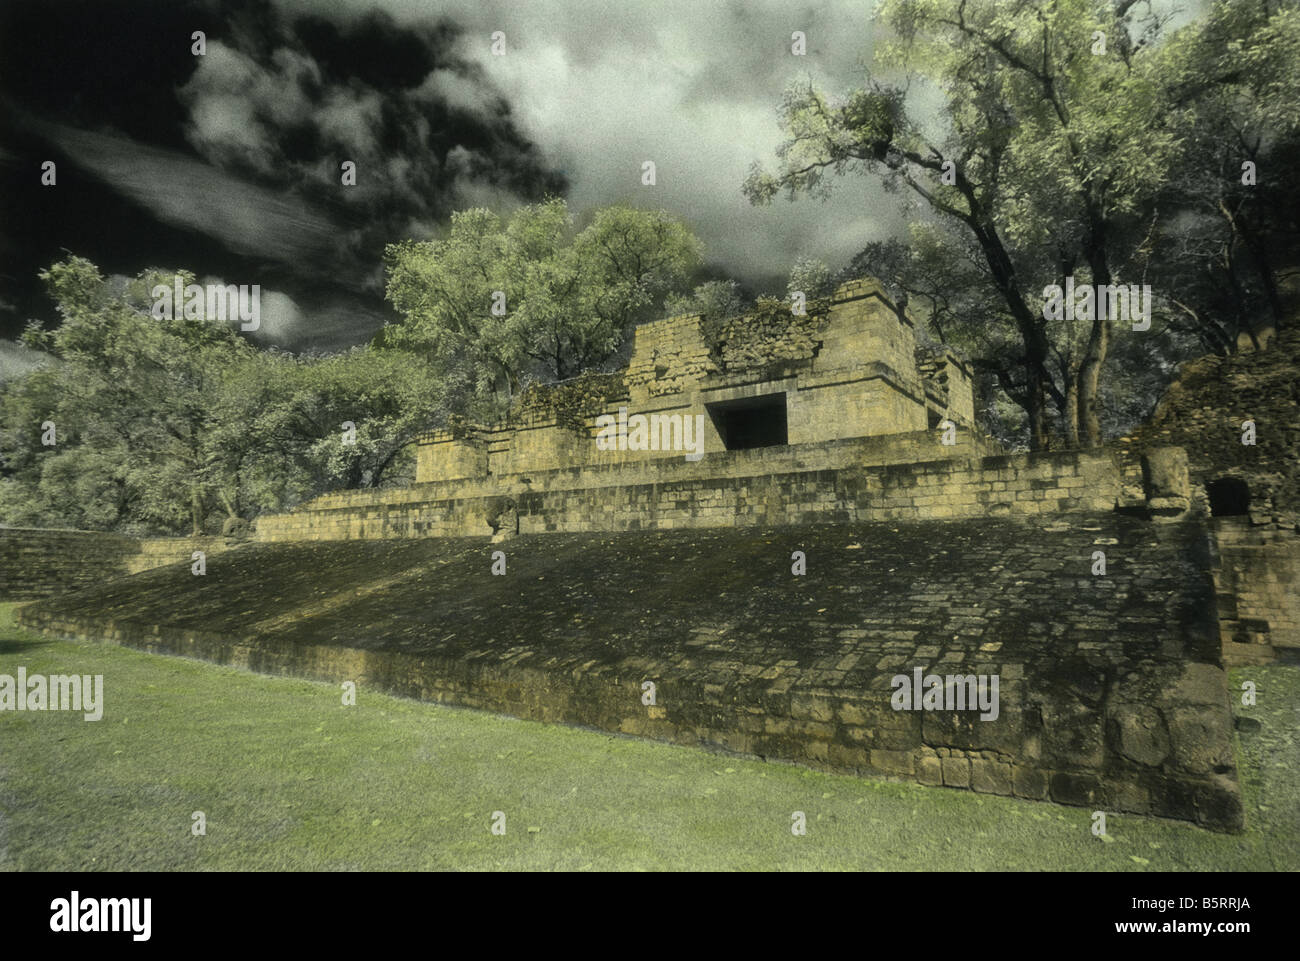 Ballcourt, Copan Maya ruins, Honduras, Hand-tinted Black and White Infrared print - Stock Image